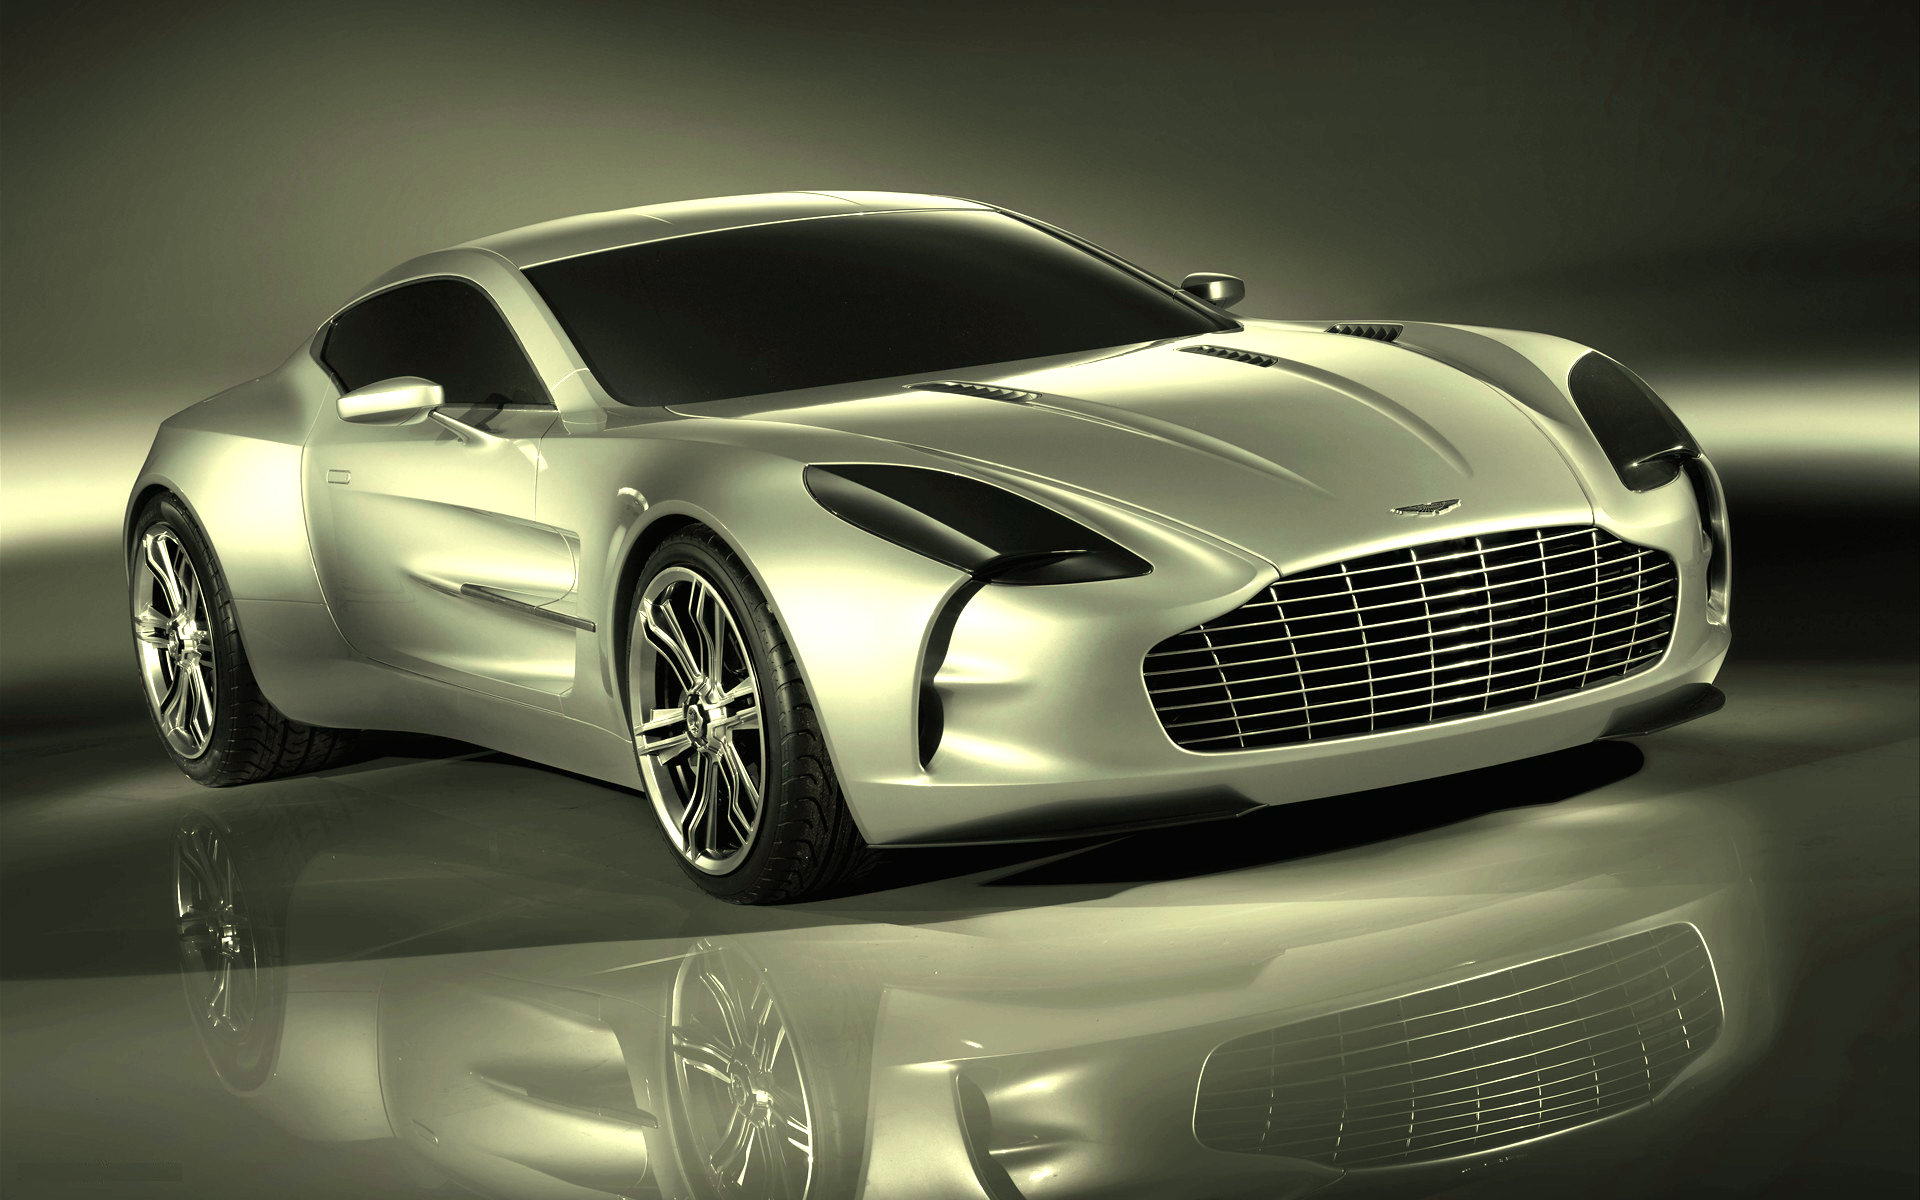 aston martin widescreen wallpaper hd wallpapers. Cars Review. Best American Auto & Cars Review